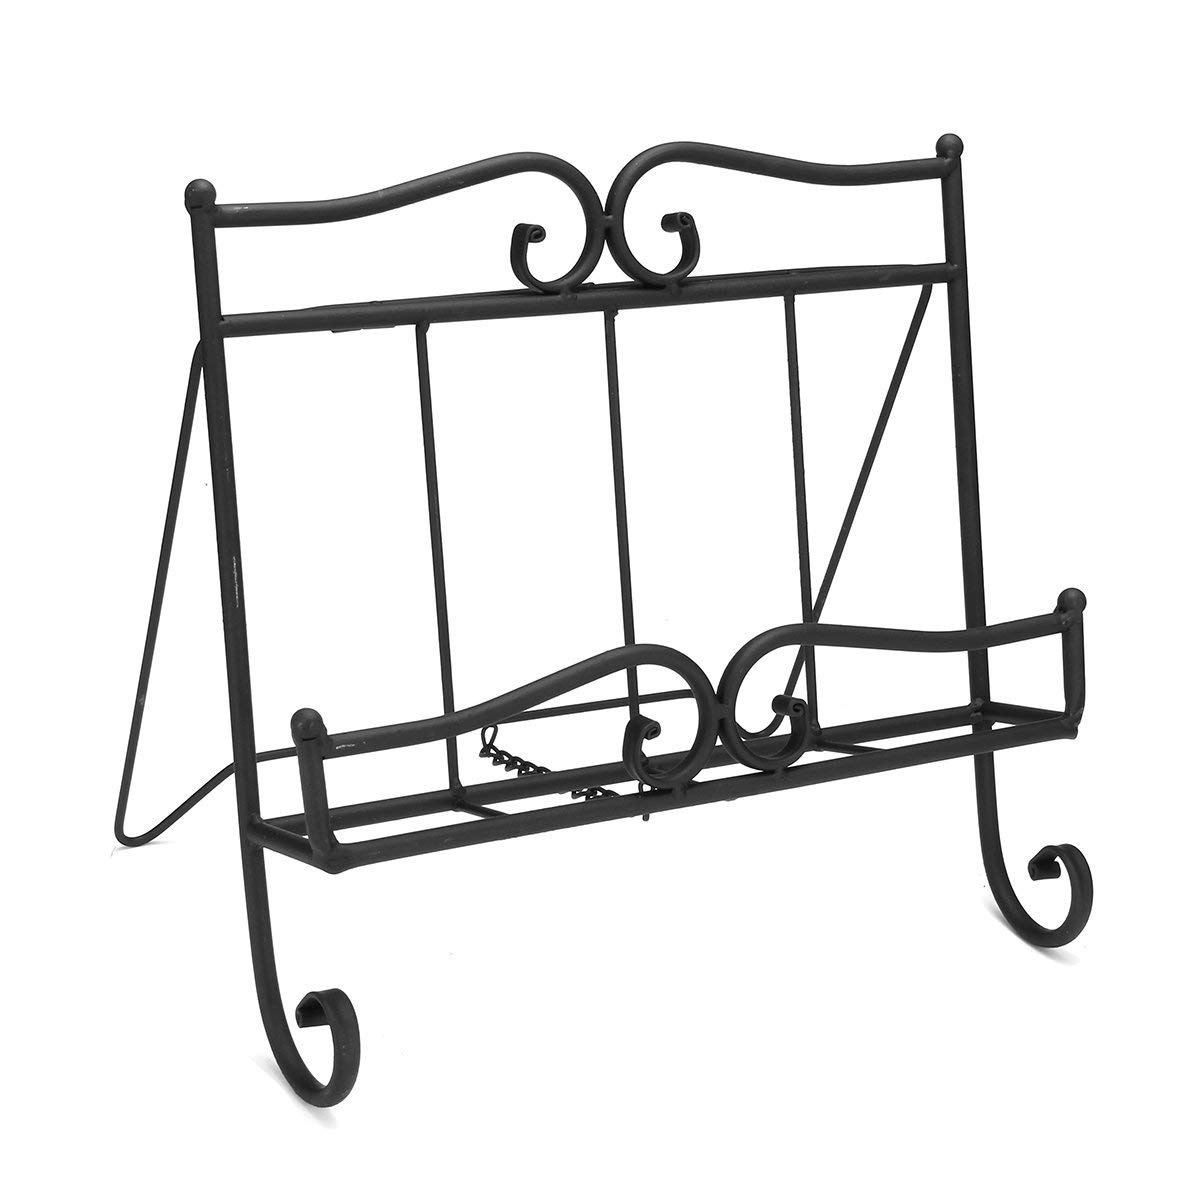 Magazine Rack Australia Vintage Style Antique Black Wrought Iron Recipe Cook Book Holder Stand Newspaper Magazine Rack